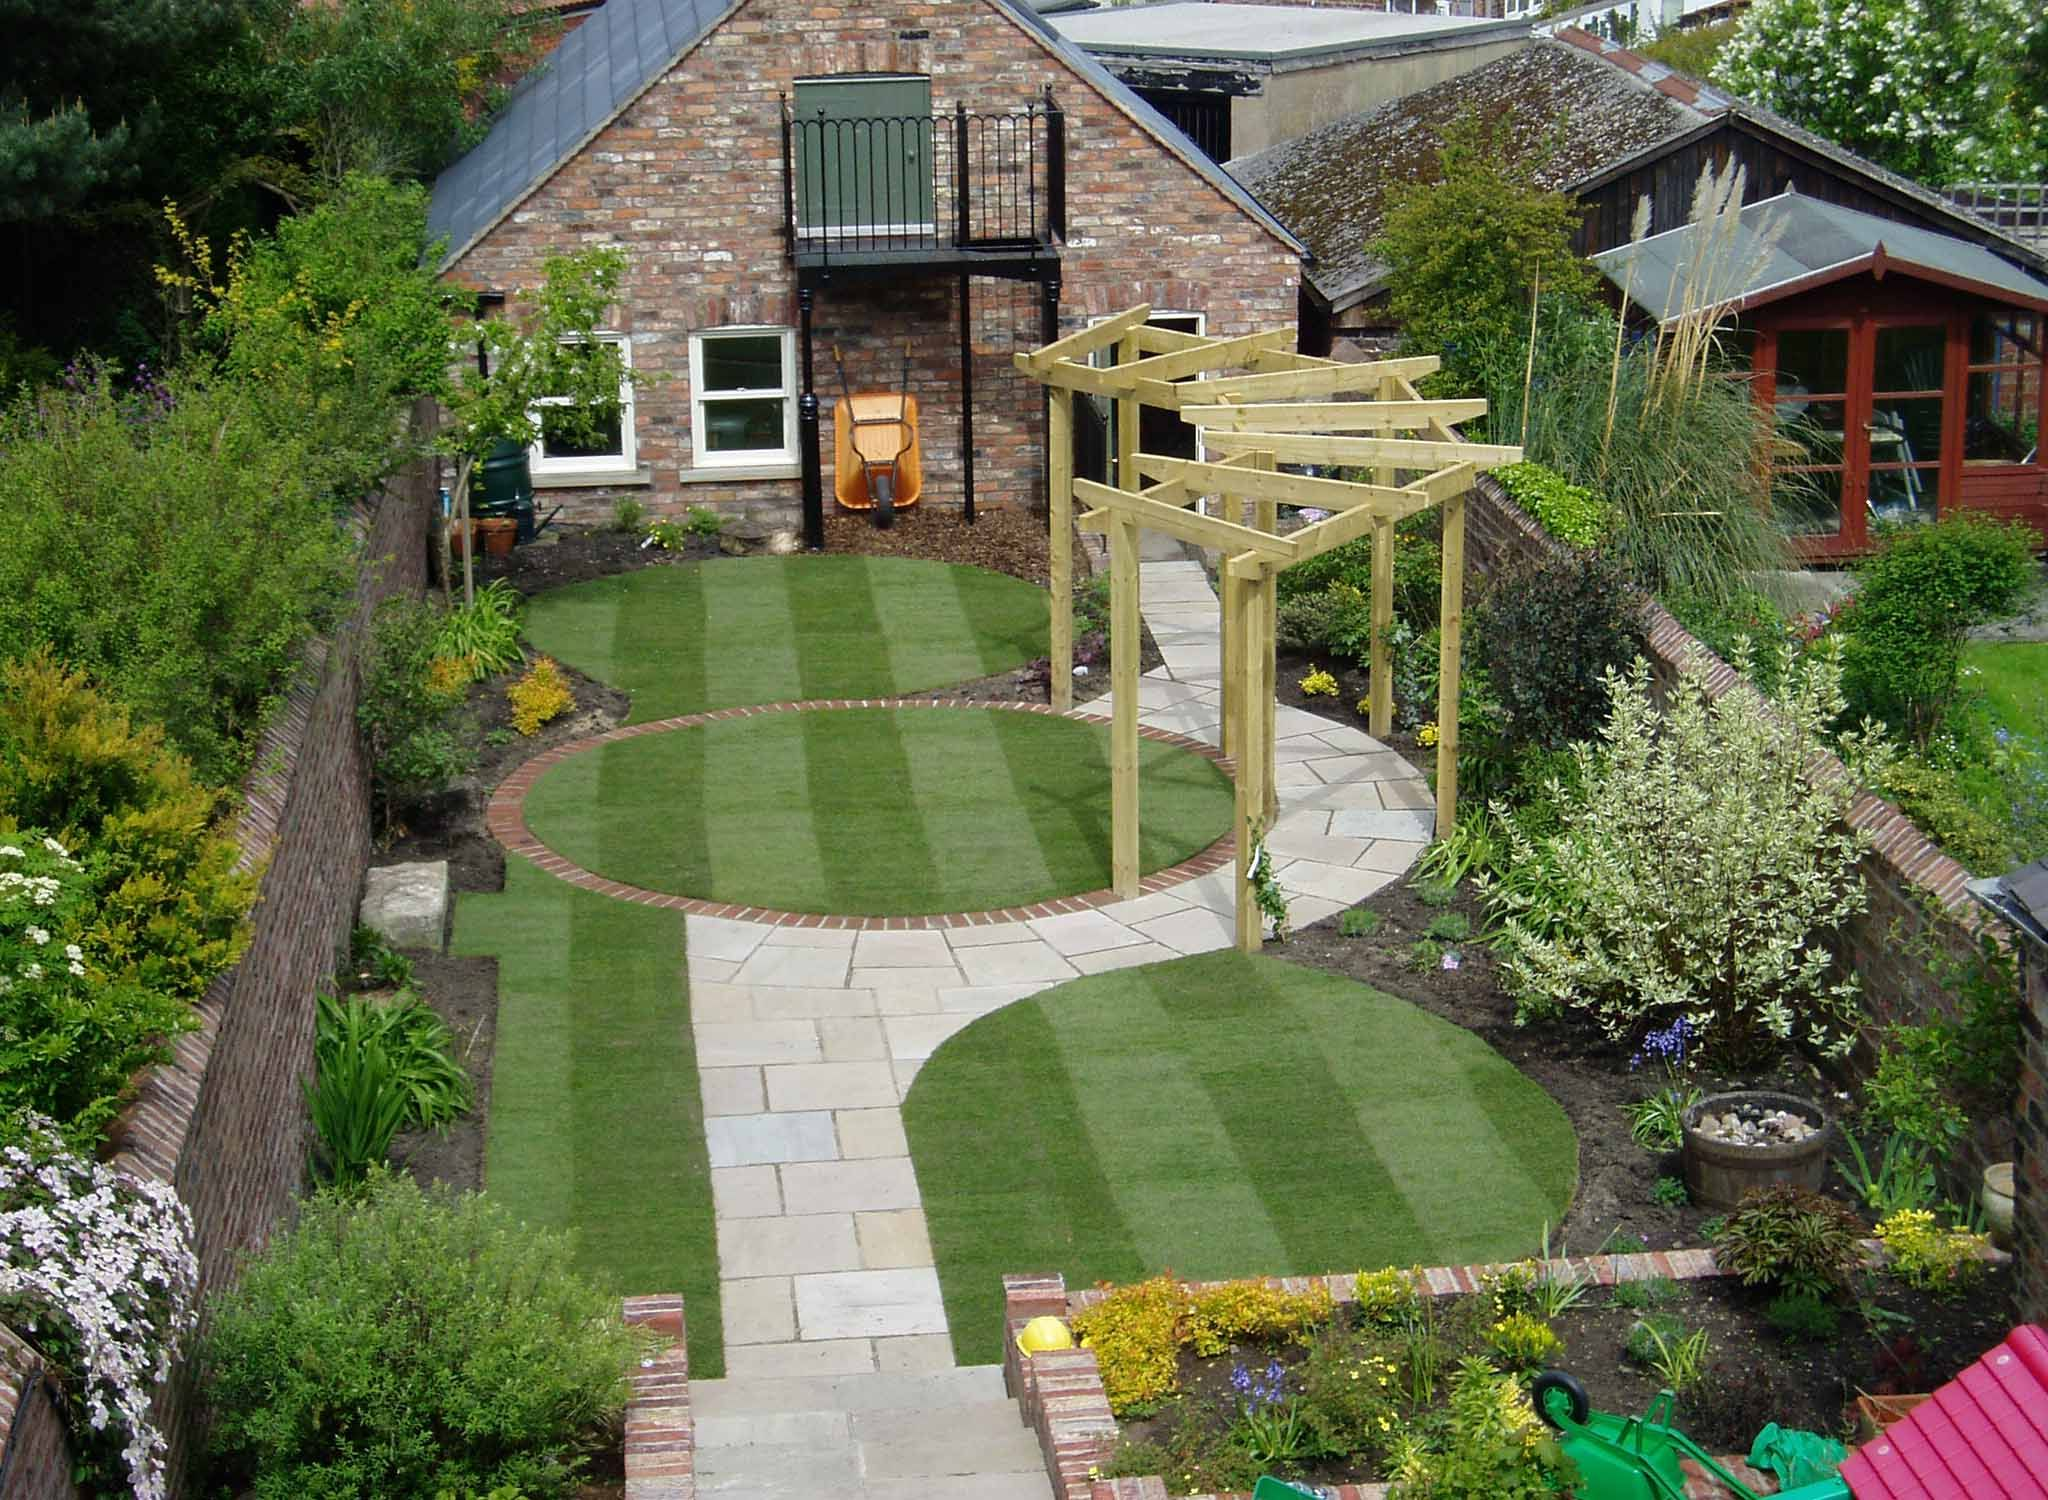 Lawn And Garden Ideas small garden design ideas lawns owen chubb garden landscapes like the green trellising Find This Pin And More On Garden Ideas